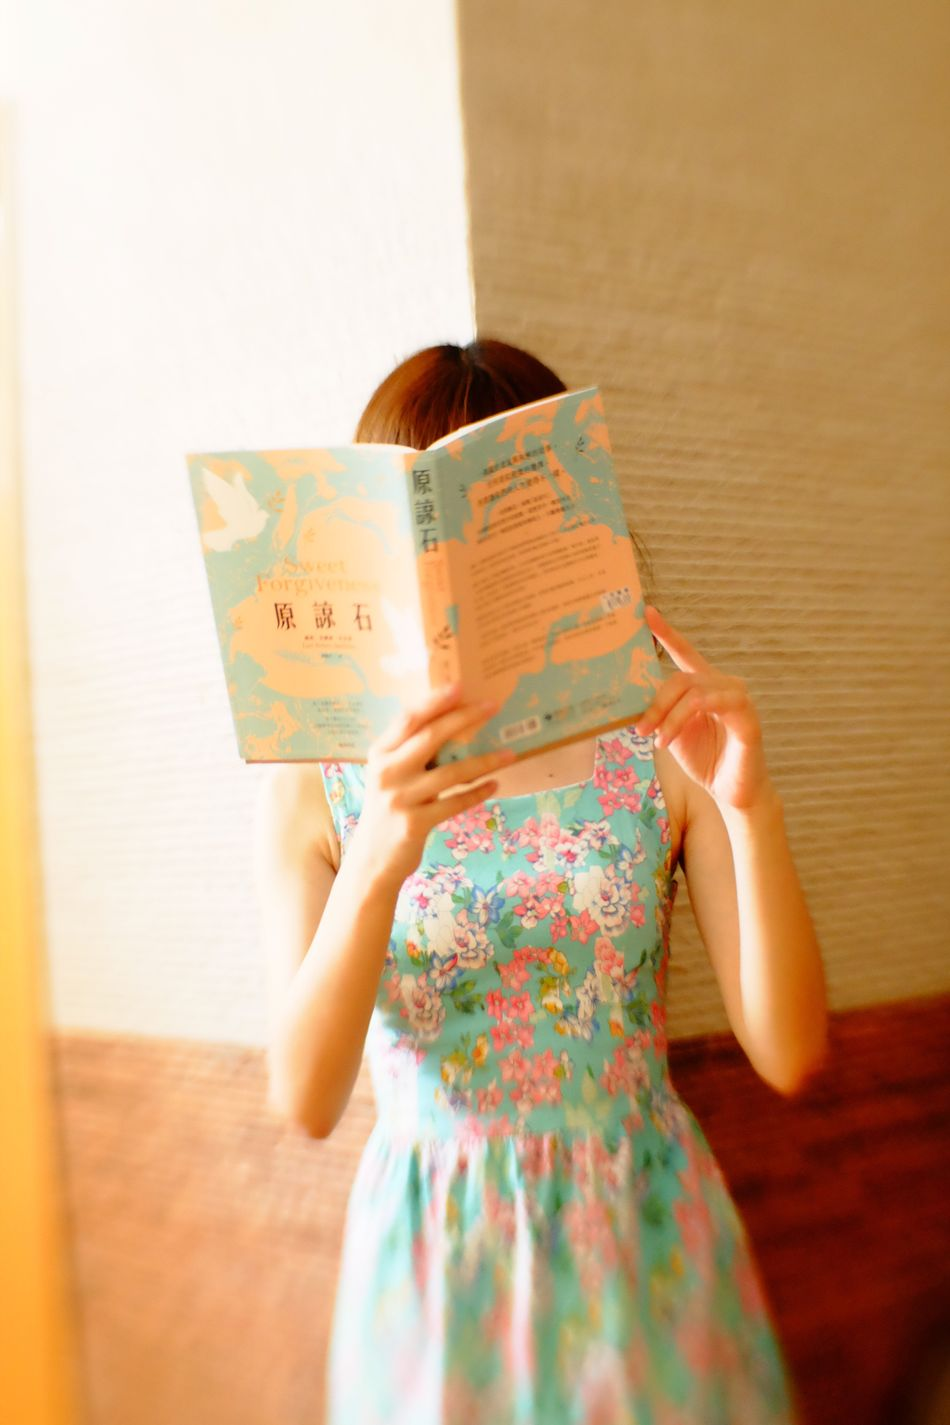 Indoors  Person Young Women Holding Young Adult Freshness Book Reading Sweet Forgiveness Lensbaby  Sweet 35 Optic Fujifilmxm1